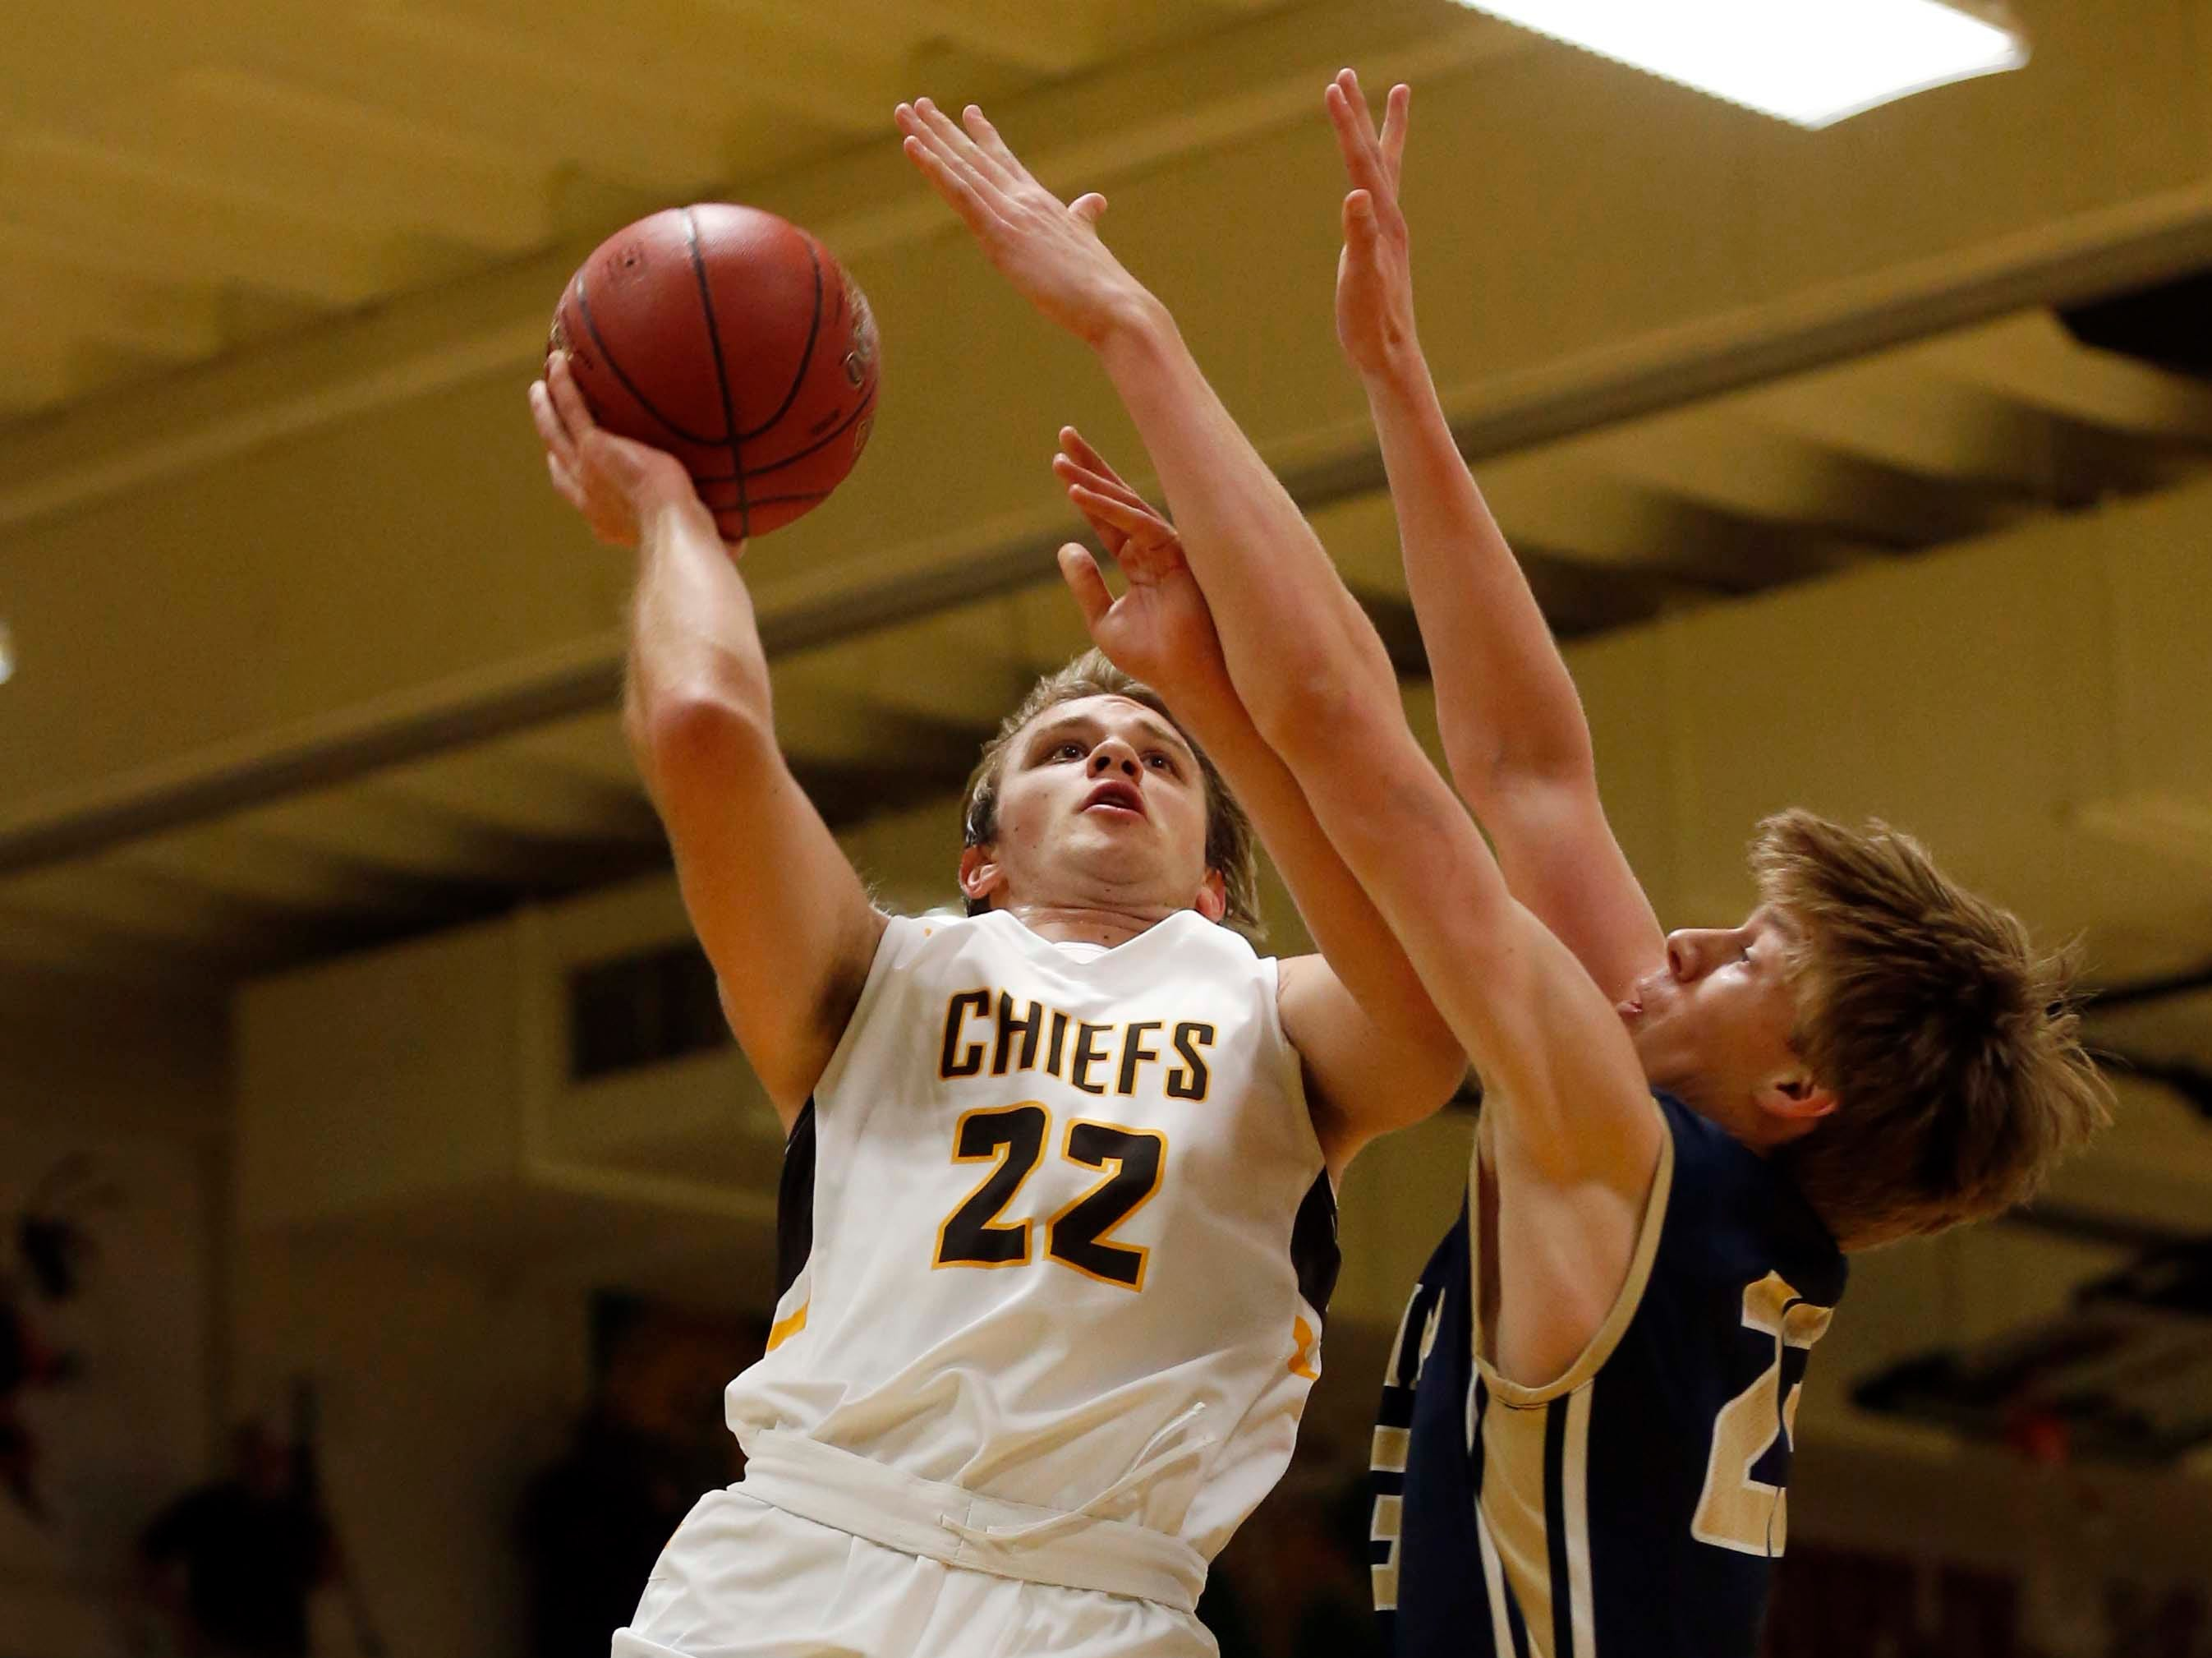 Kickapoo's Tanner Oetting looks to score against Helias in Springfield on November 29, 2018.